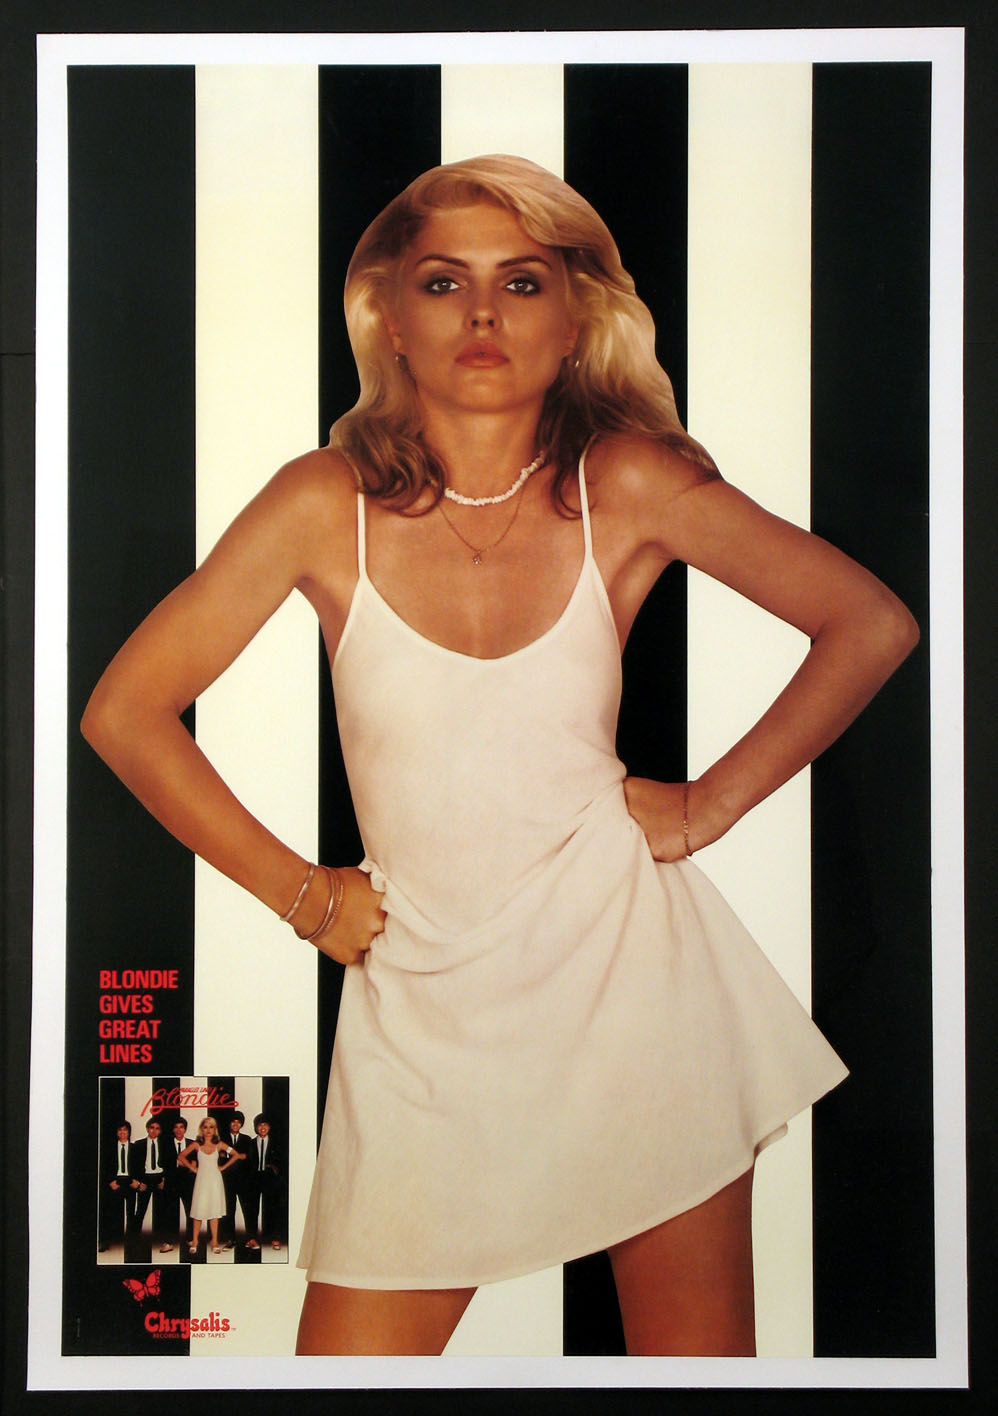 BLONDIE PARALLEL LINES ALBUM PROMOTIONAL POSTER @ FilmPosters.com